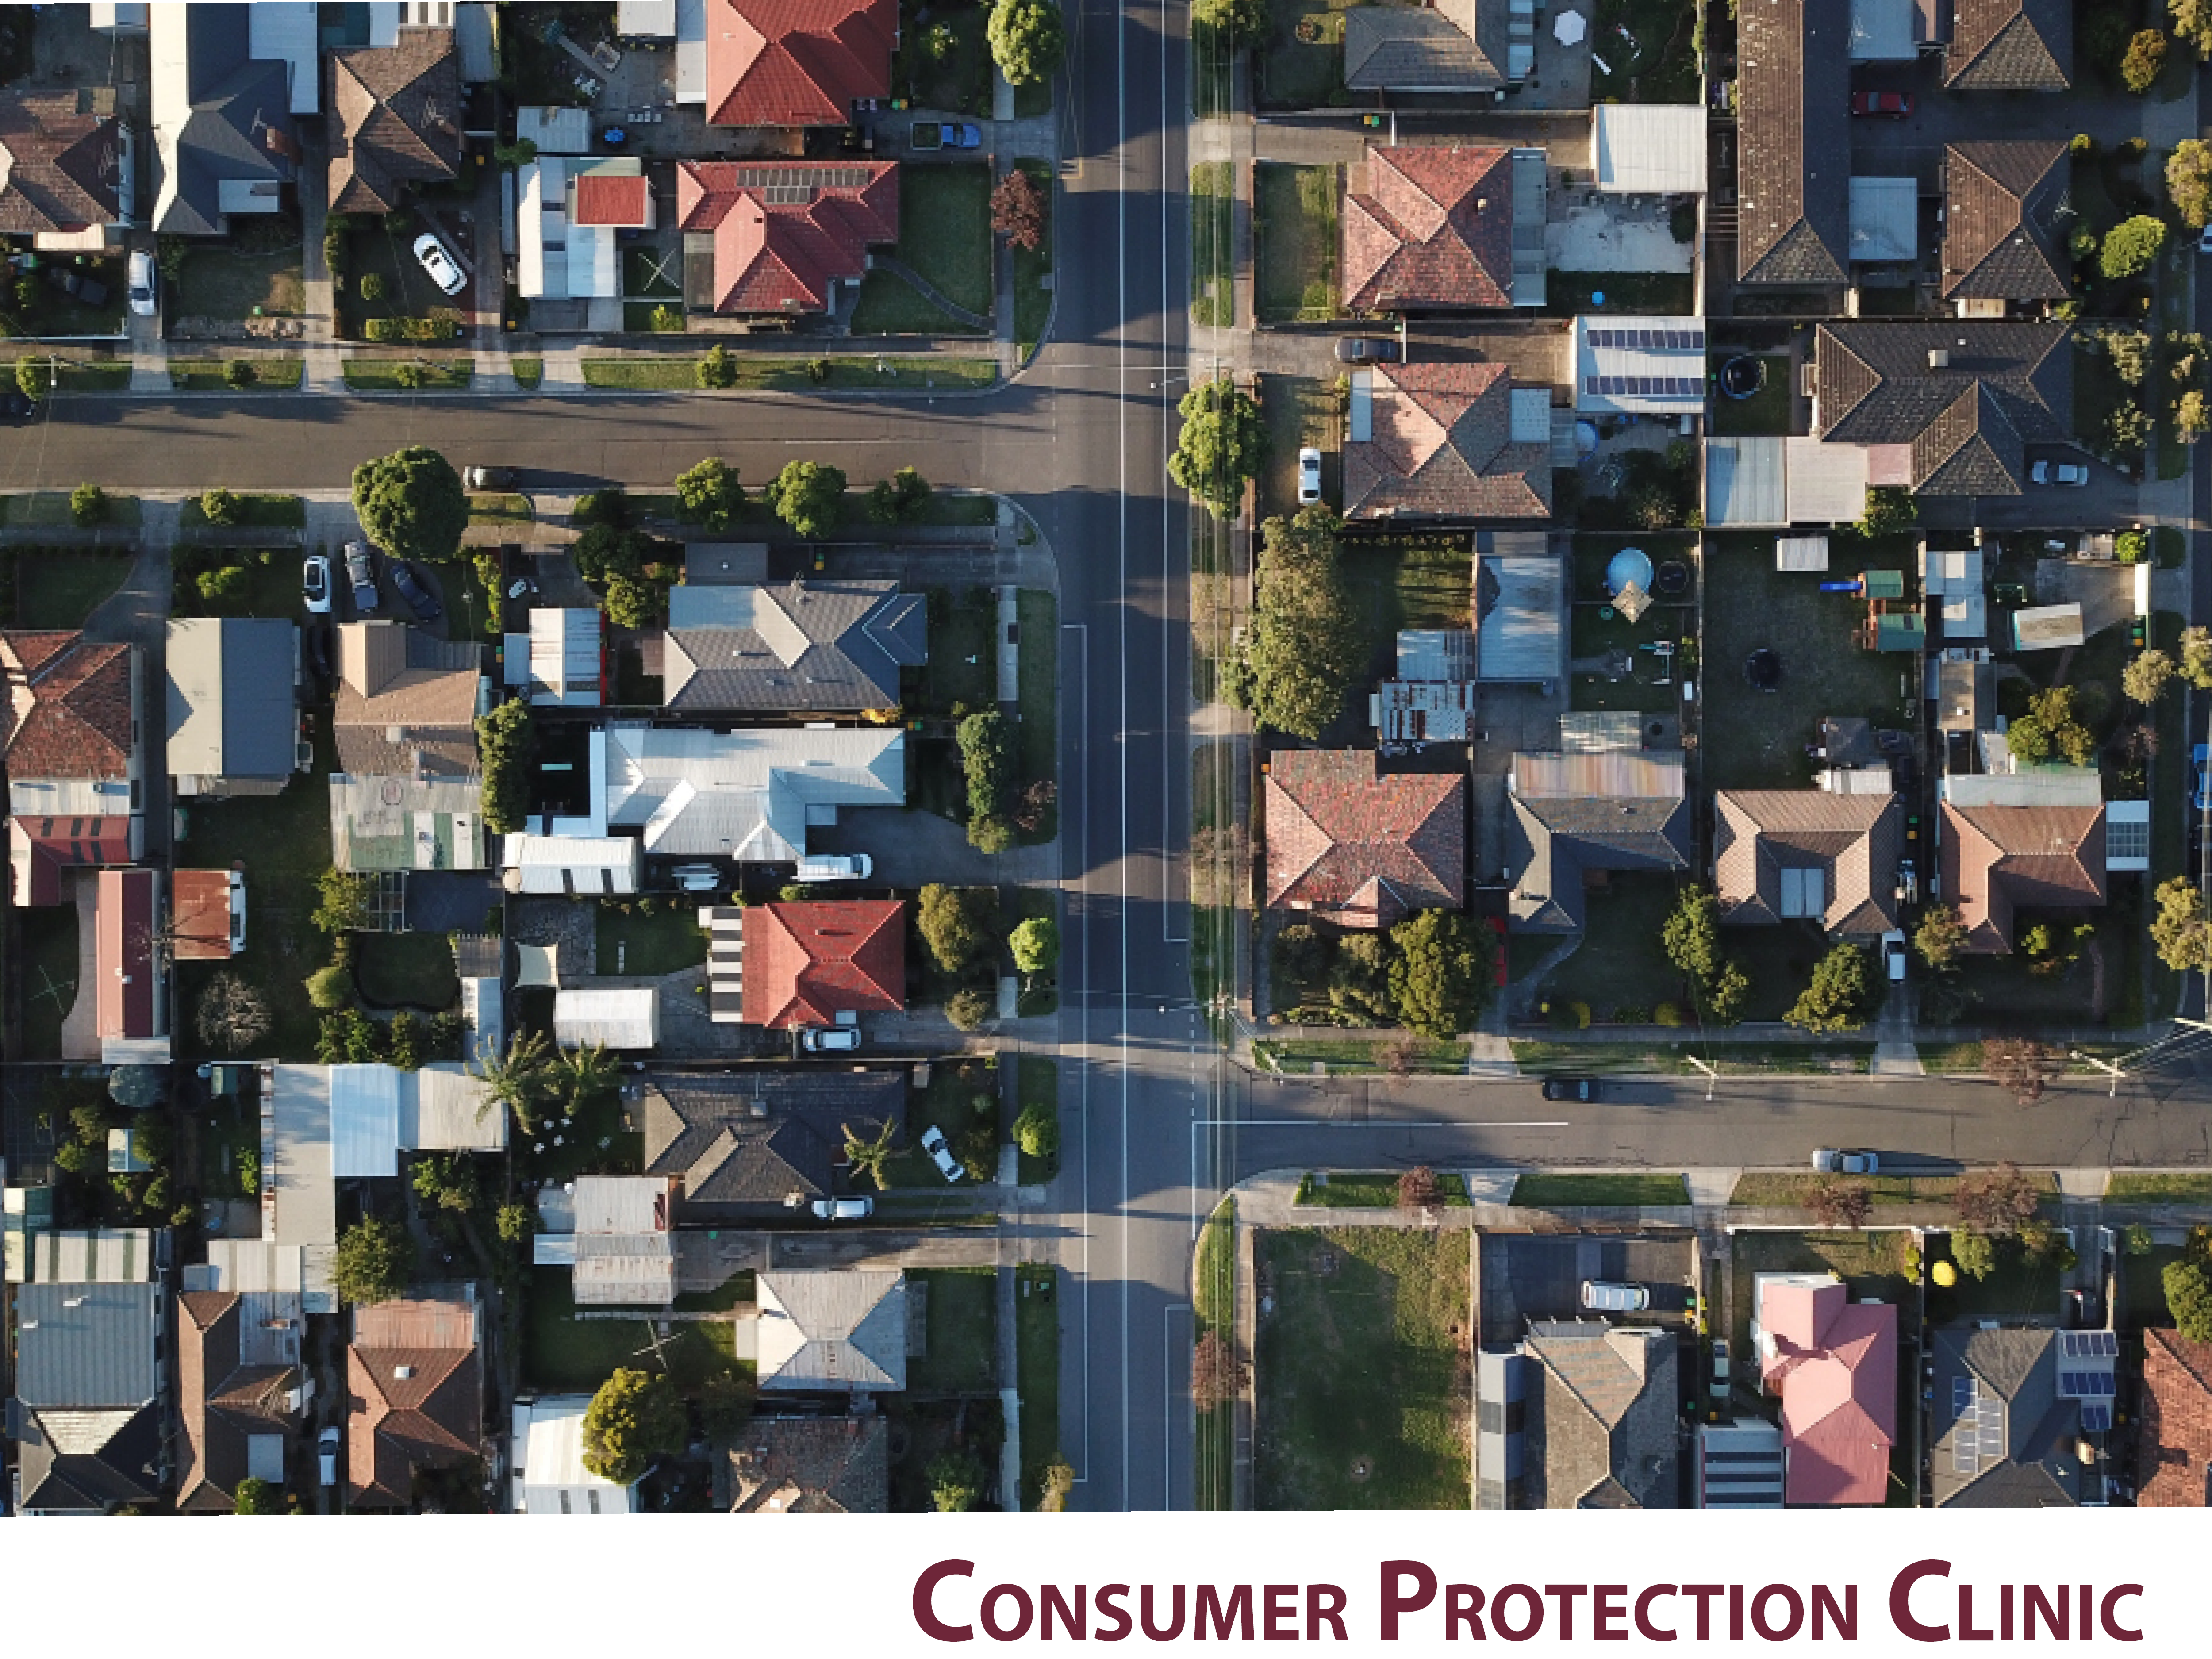 Consumer Protection Clinic